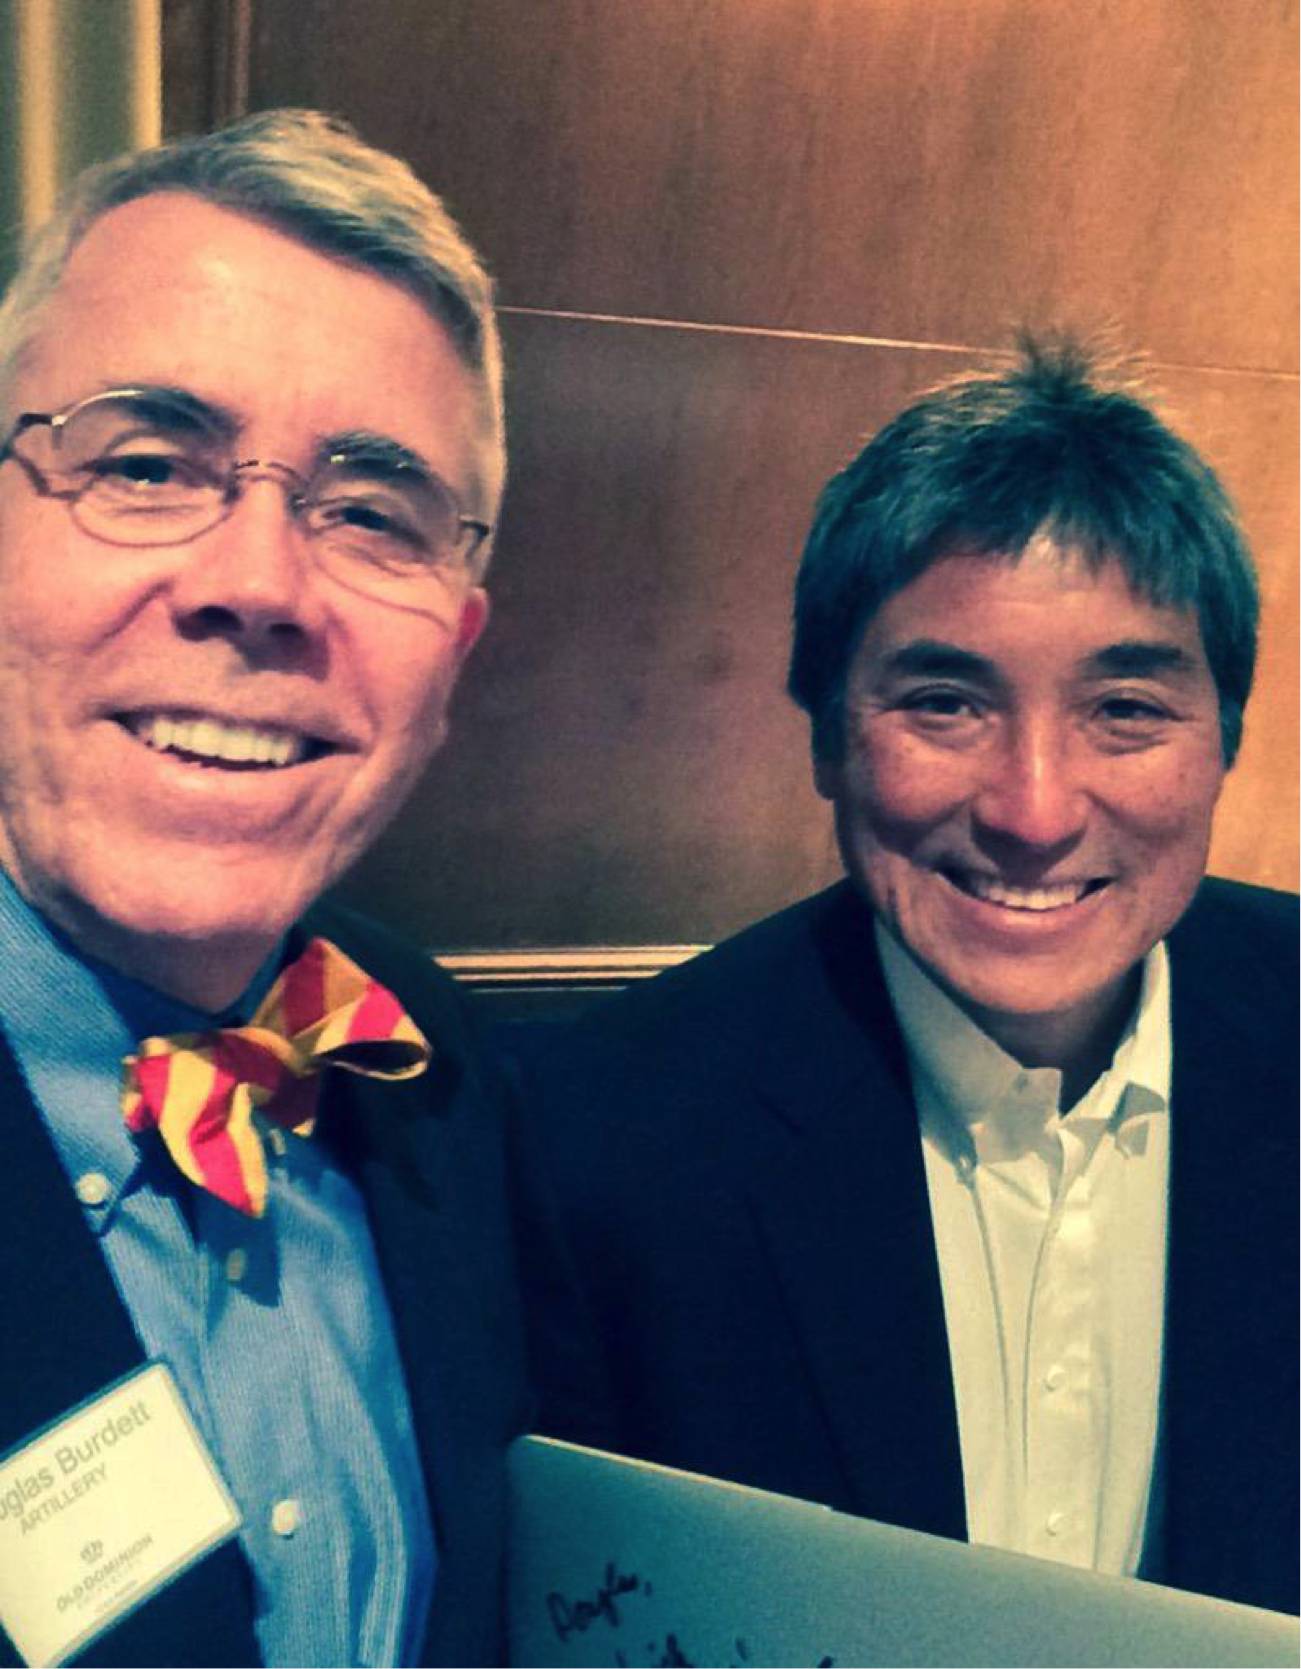 Guy Kawasaki and Douglas Burdett